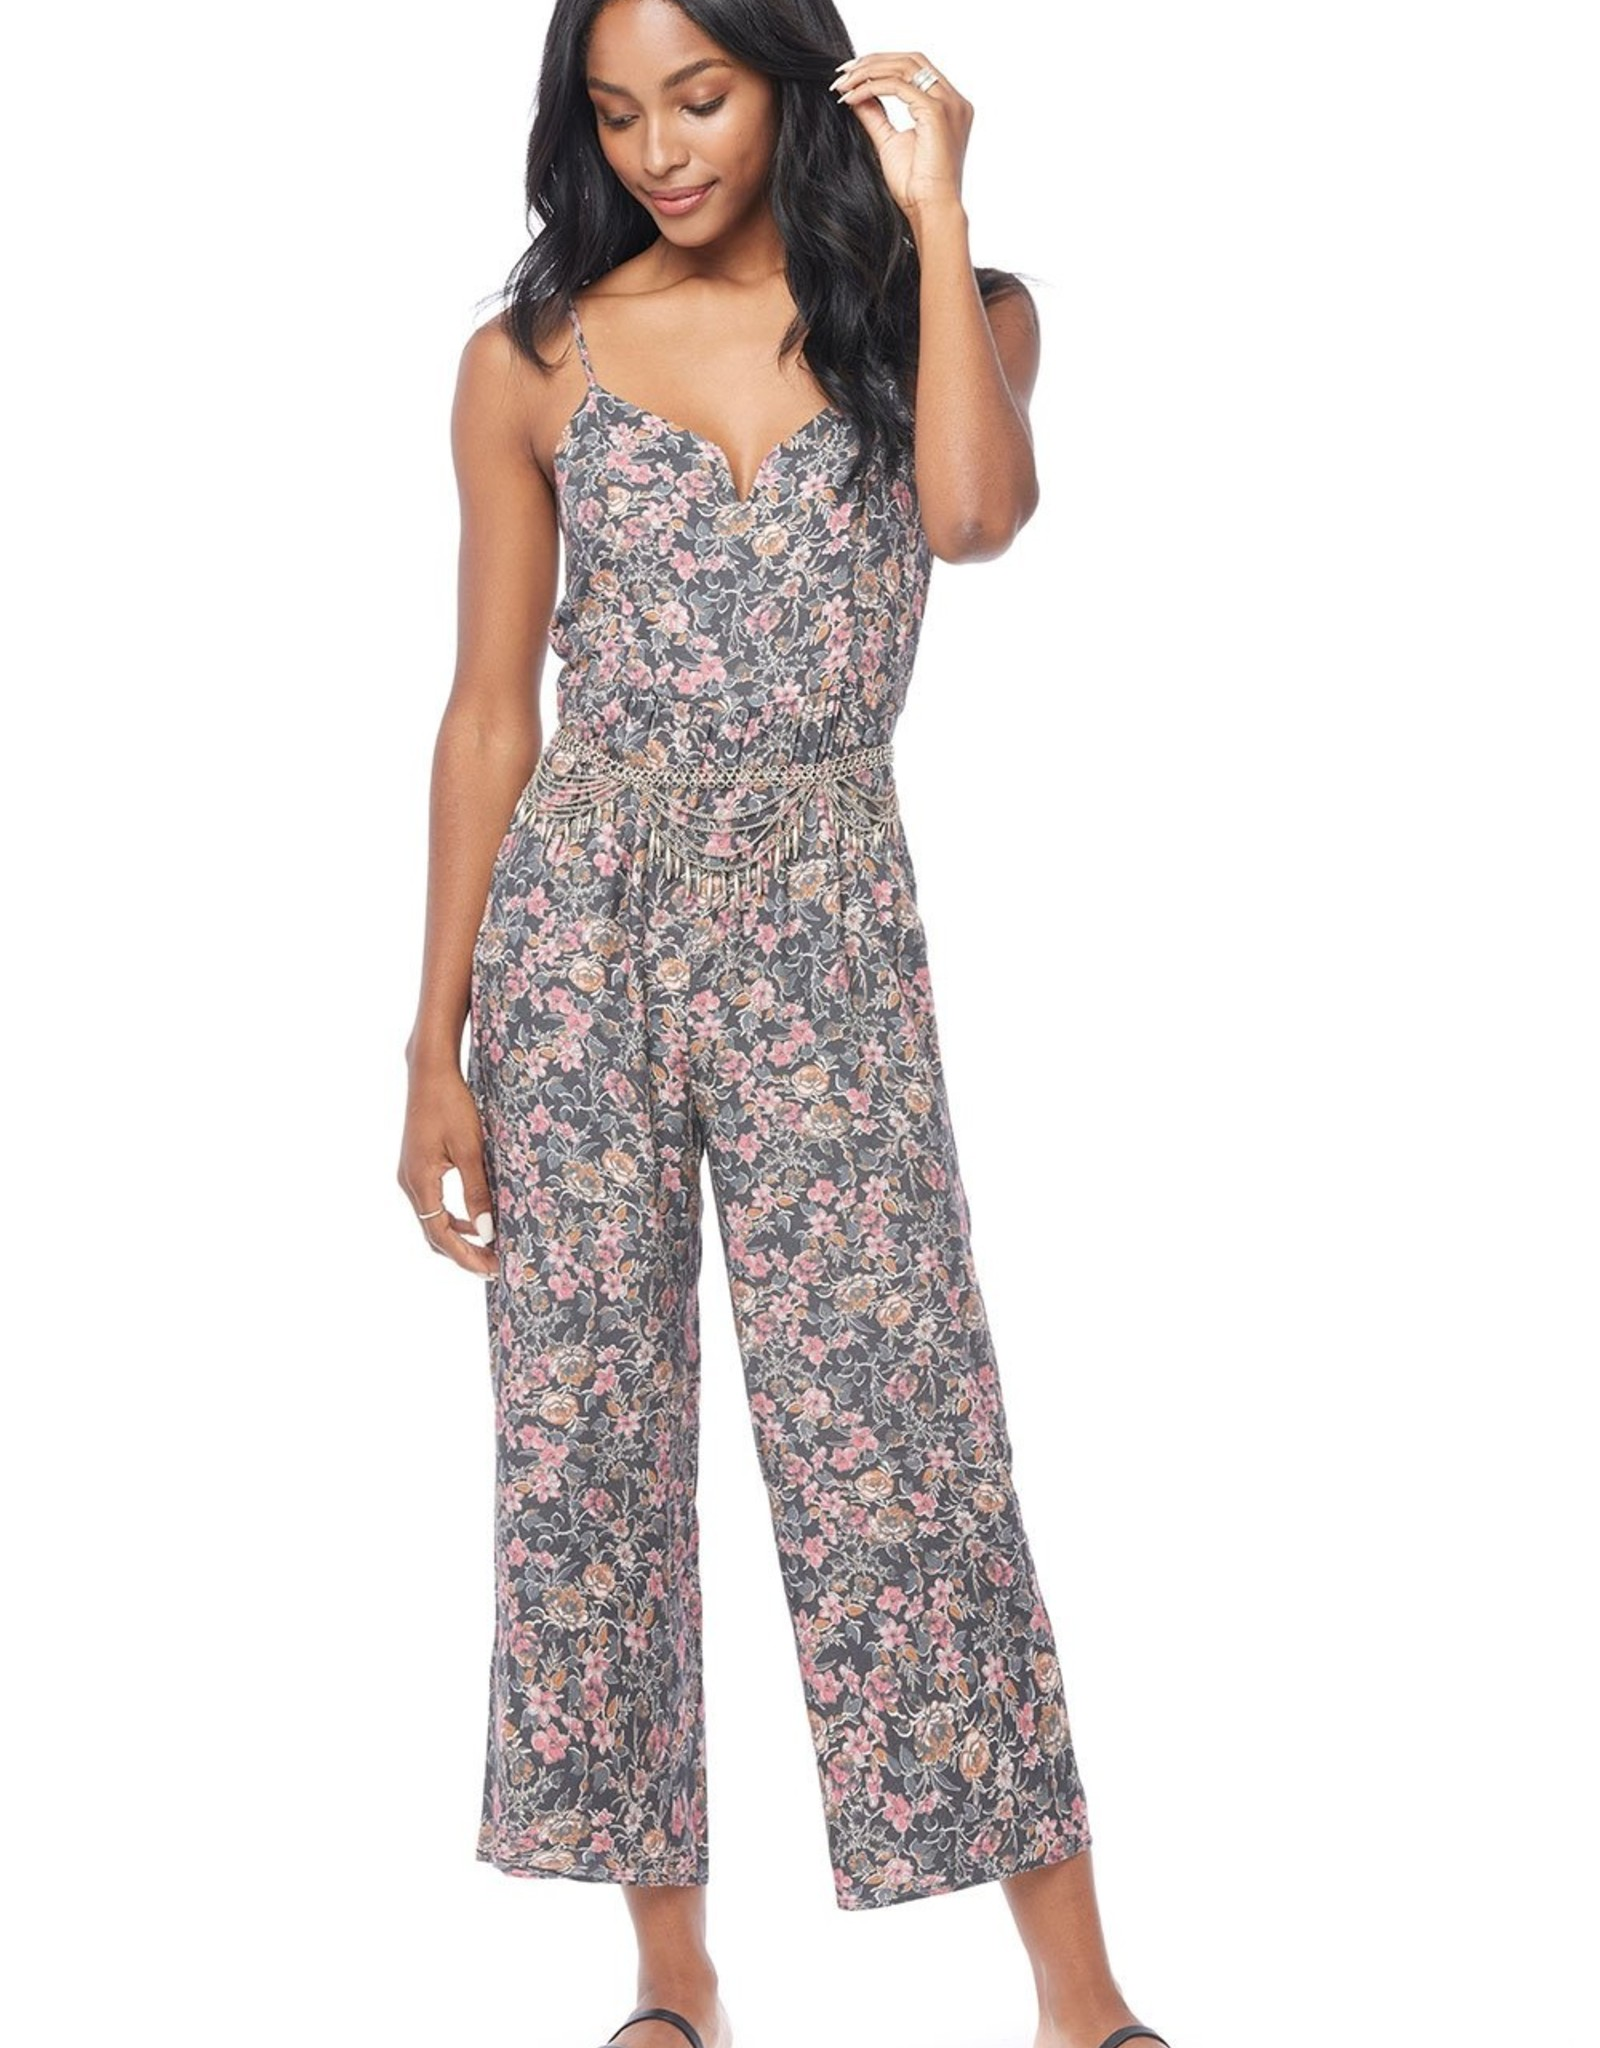 Saltwater Luxe Slater Strappy Floral Jumper